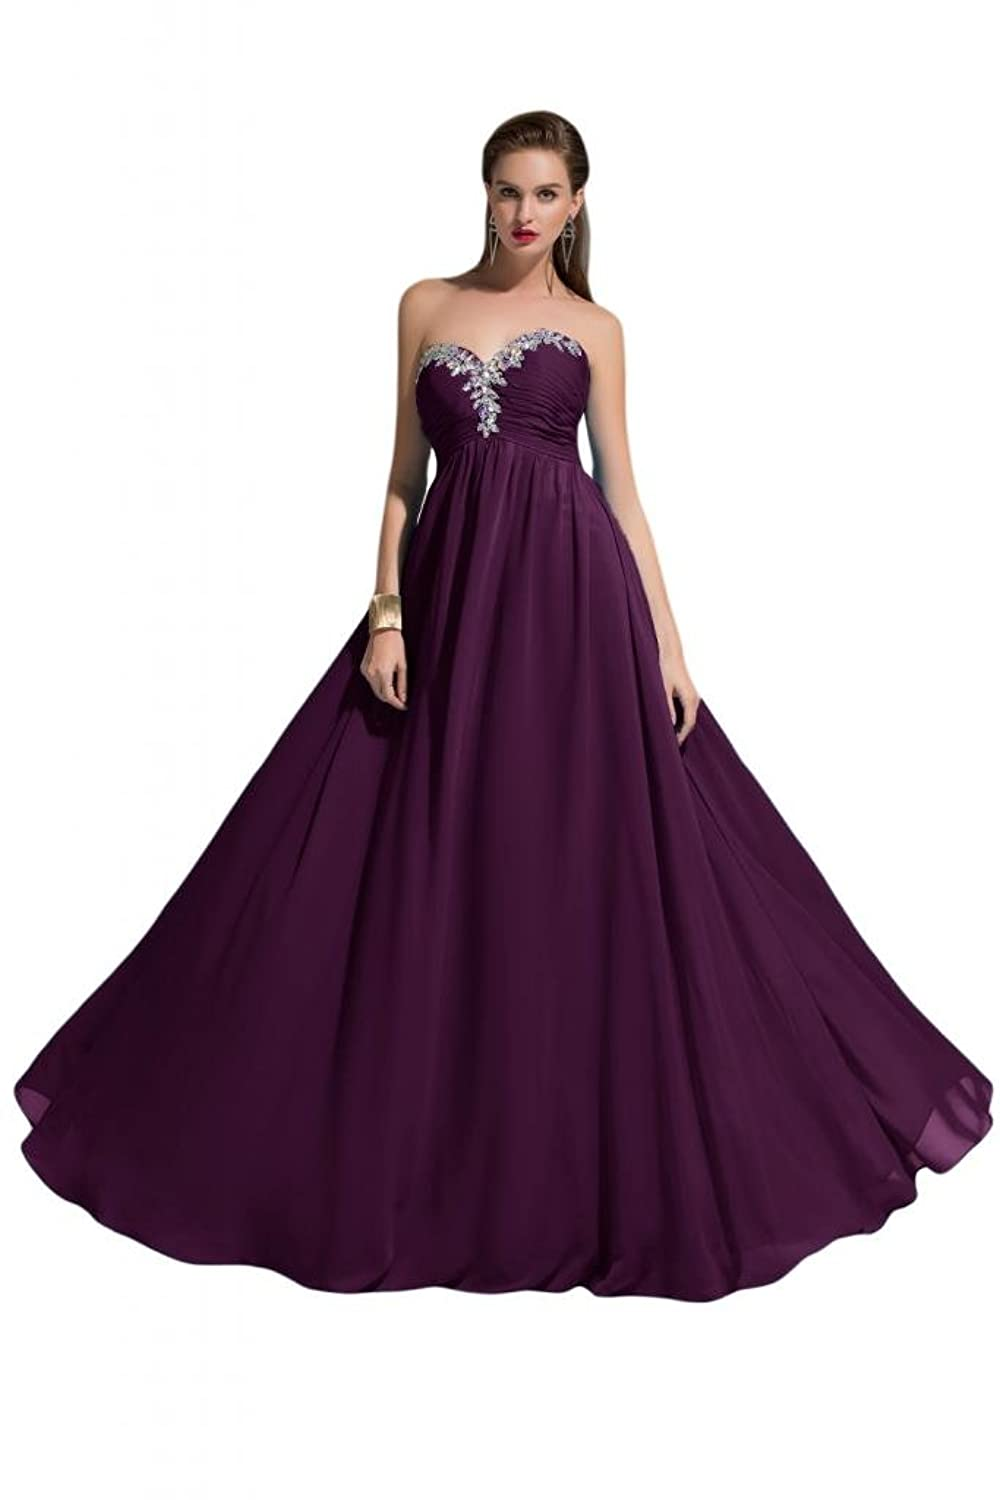 Sunvary Spaghetti Strap Draped Ruffle Applique Long Pageant Evening Dresses